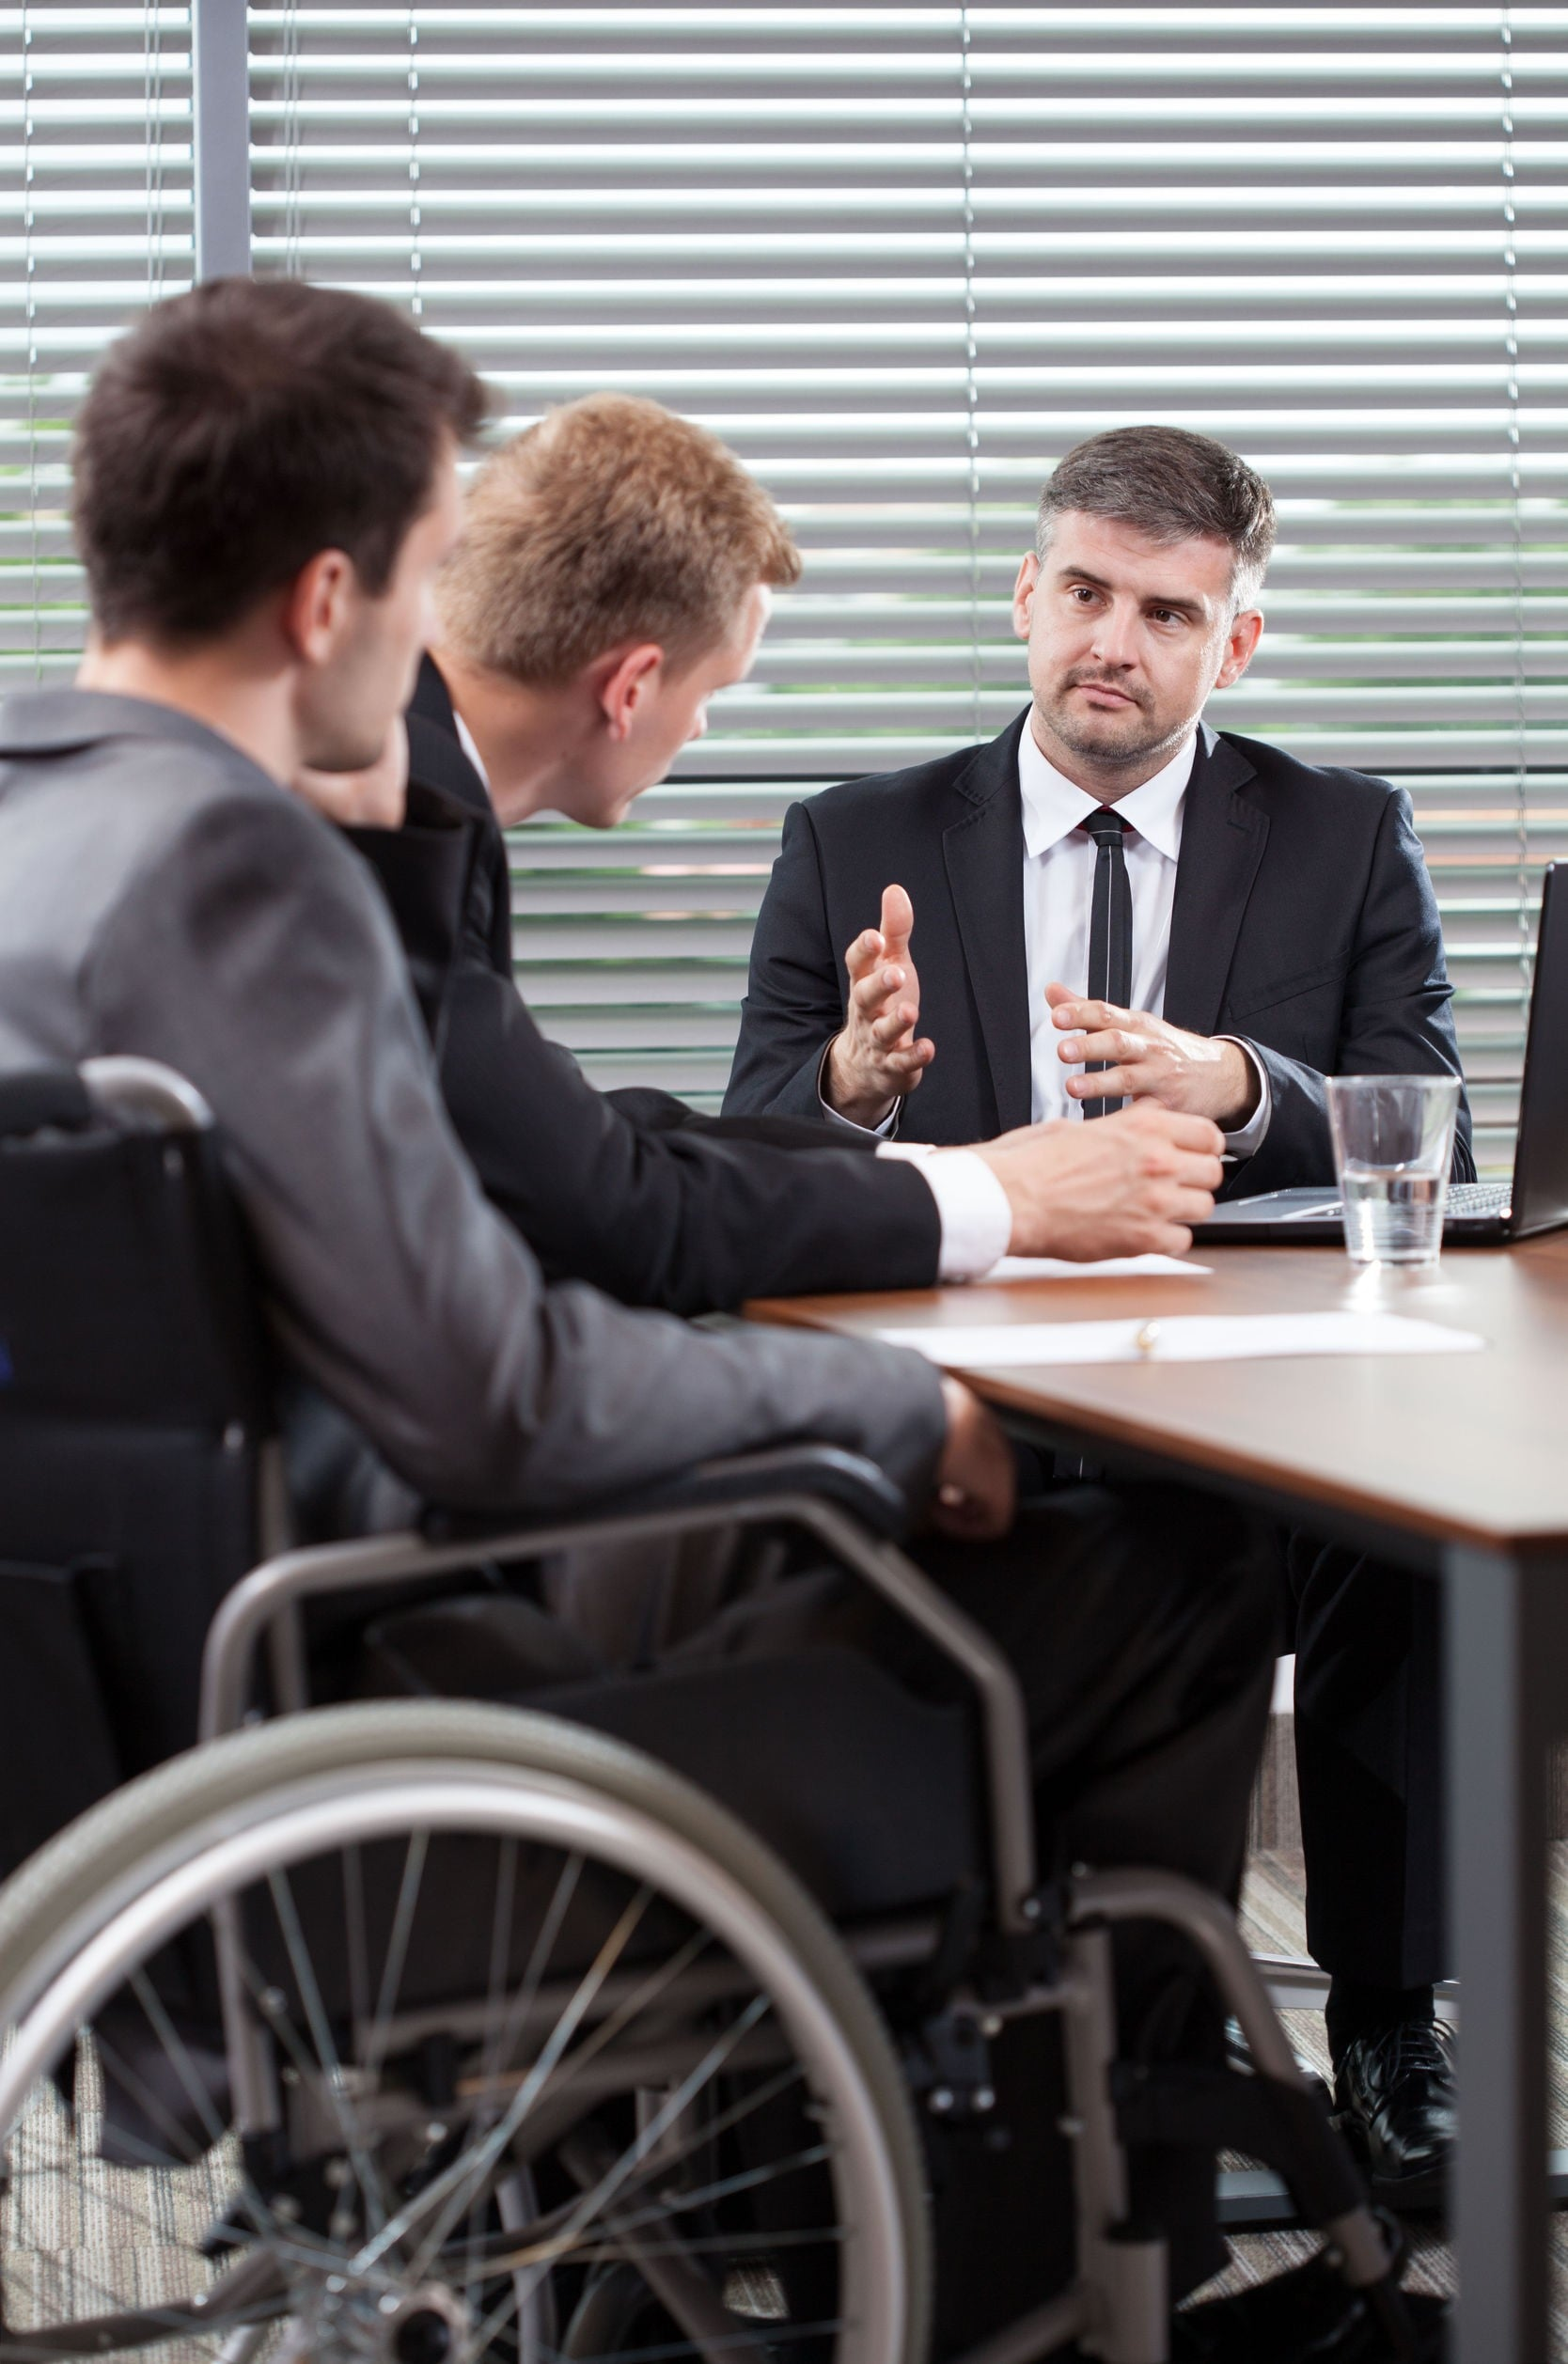 5 Things You Should Look for in a Personal Injury Lawyer